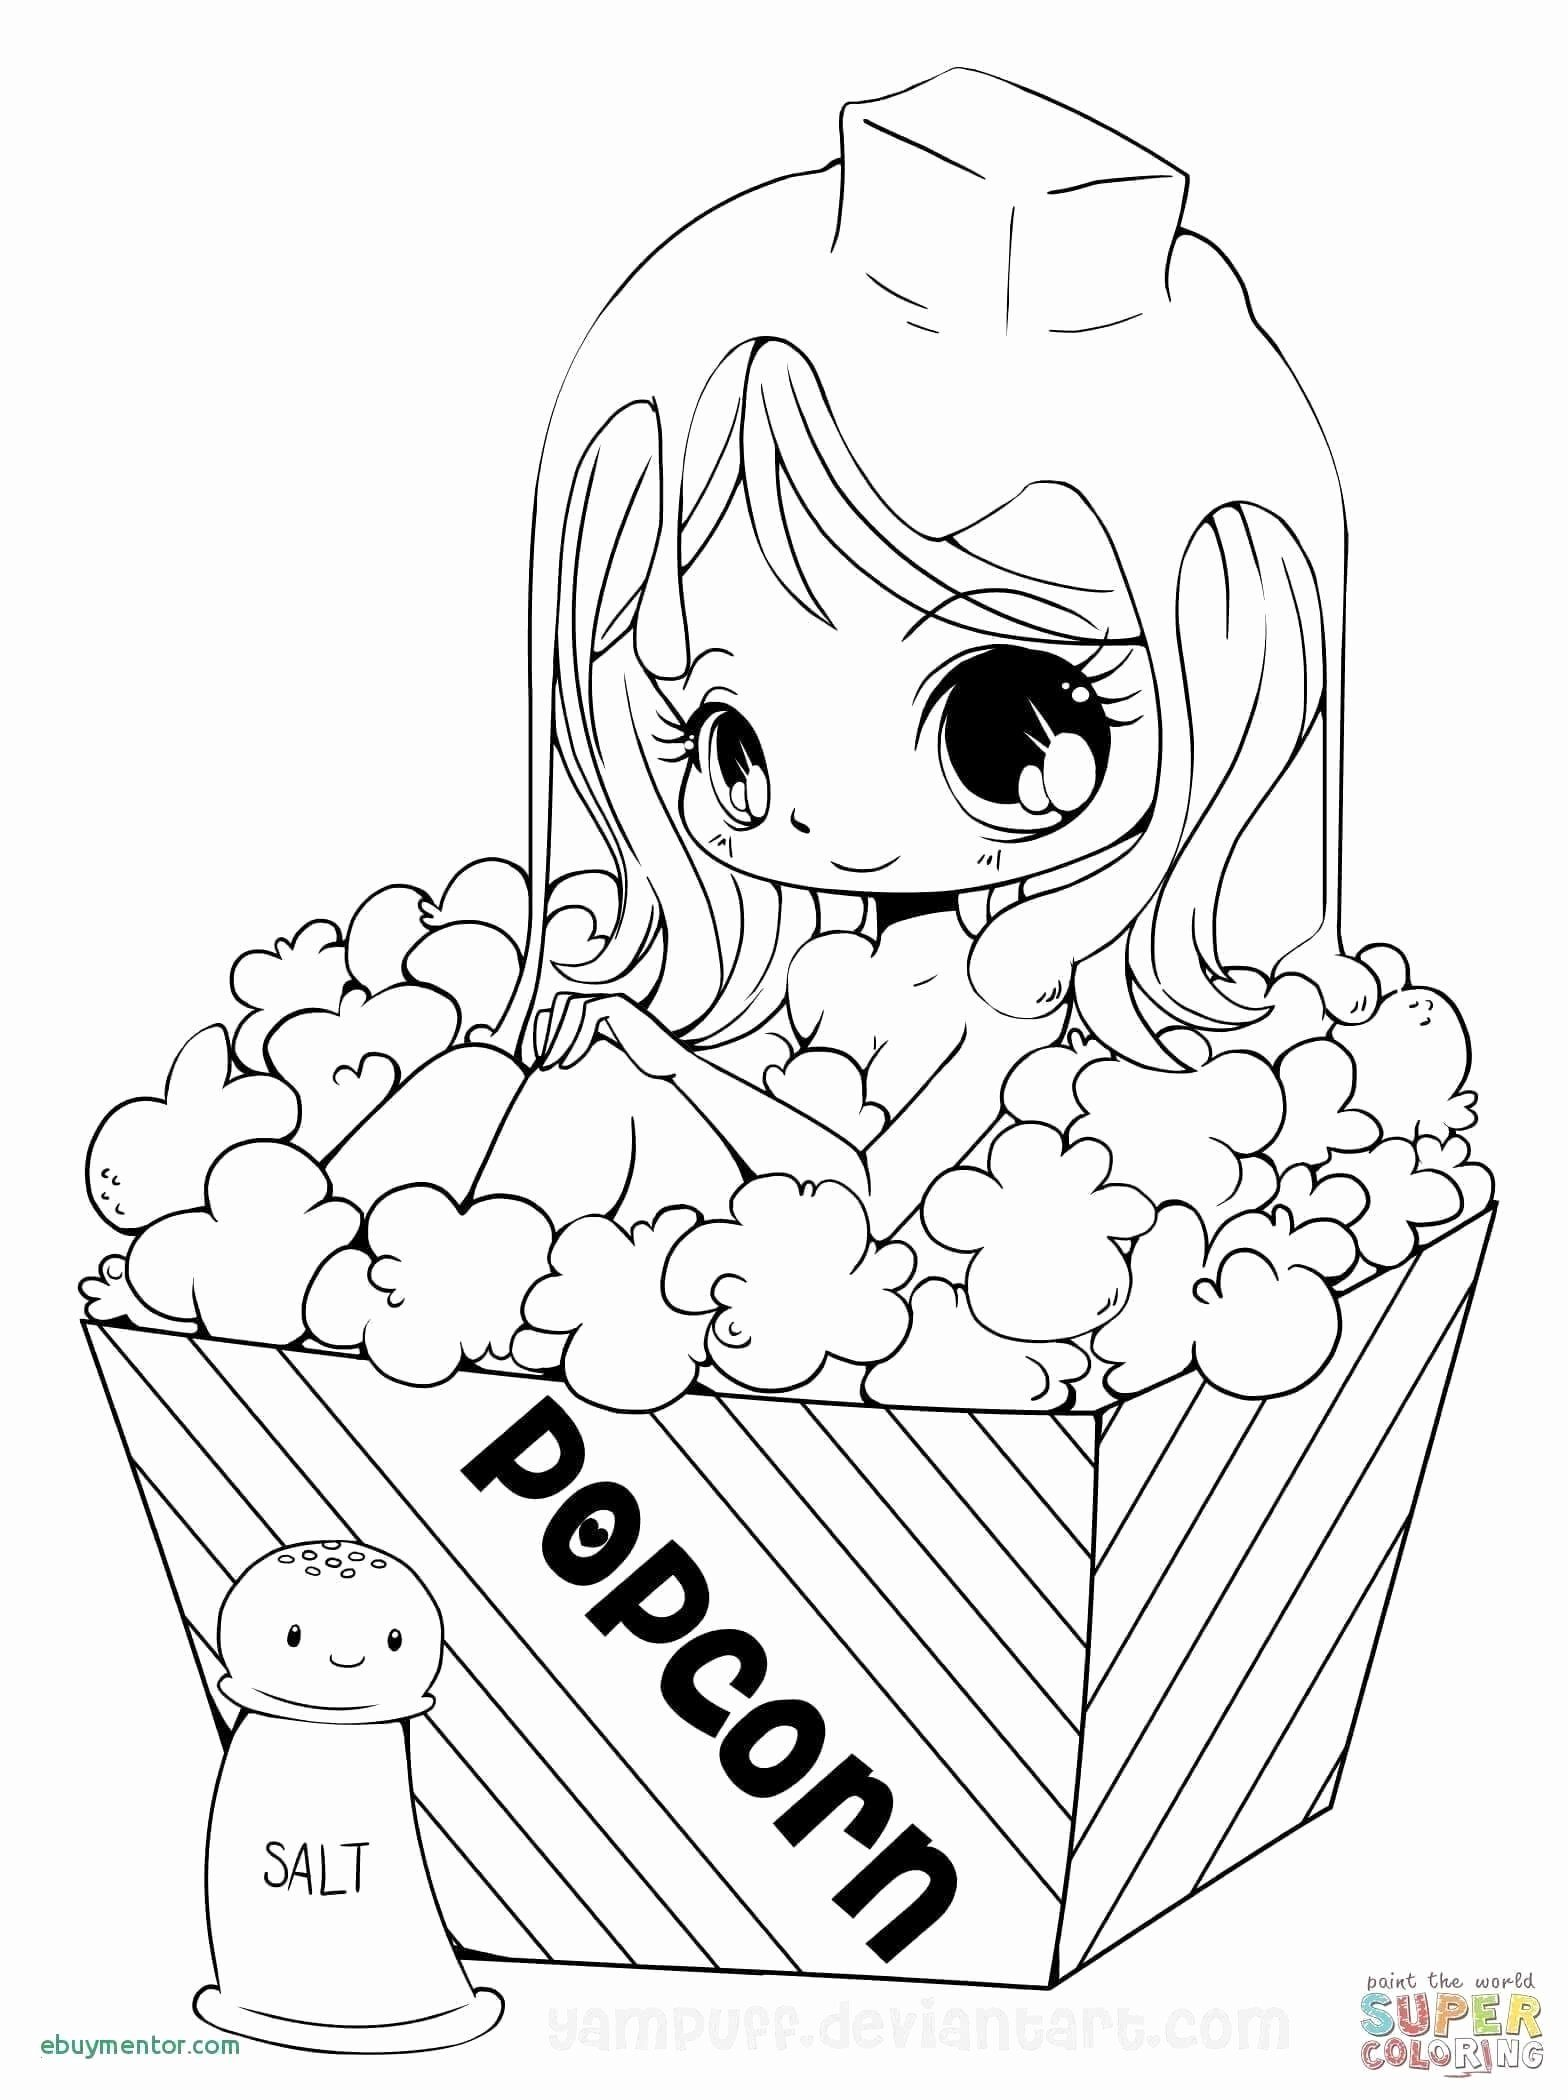 Anime Coloring Food Inspirational 649 Best Example Kids Coloring Pages  Images in 2020 | Chibi coloring pages, Princess coloring pages, Superhero coloring  pages